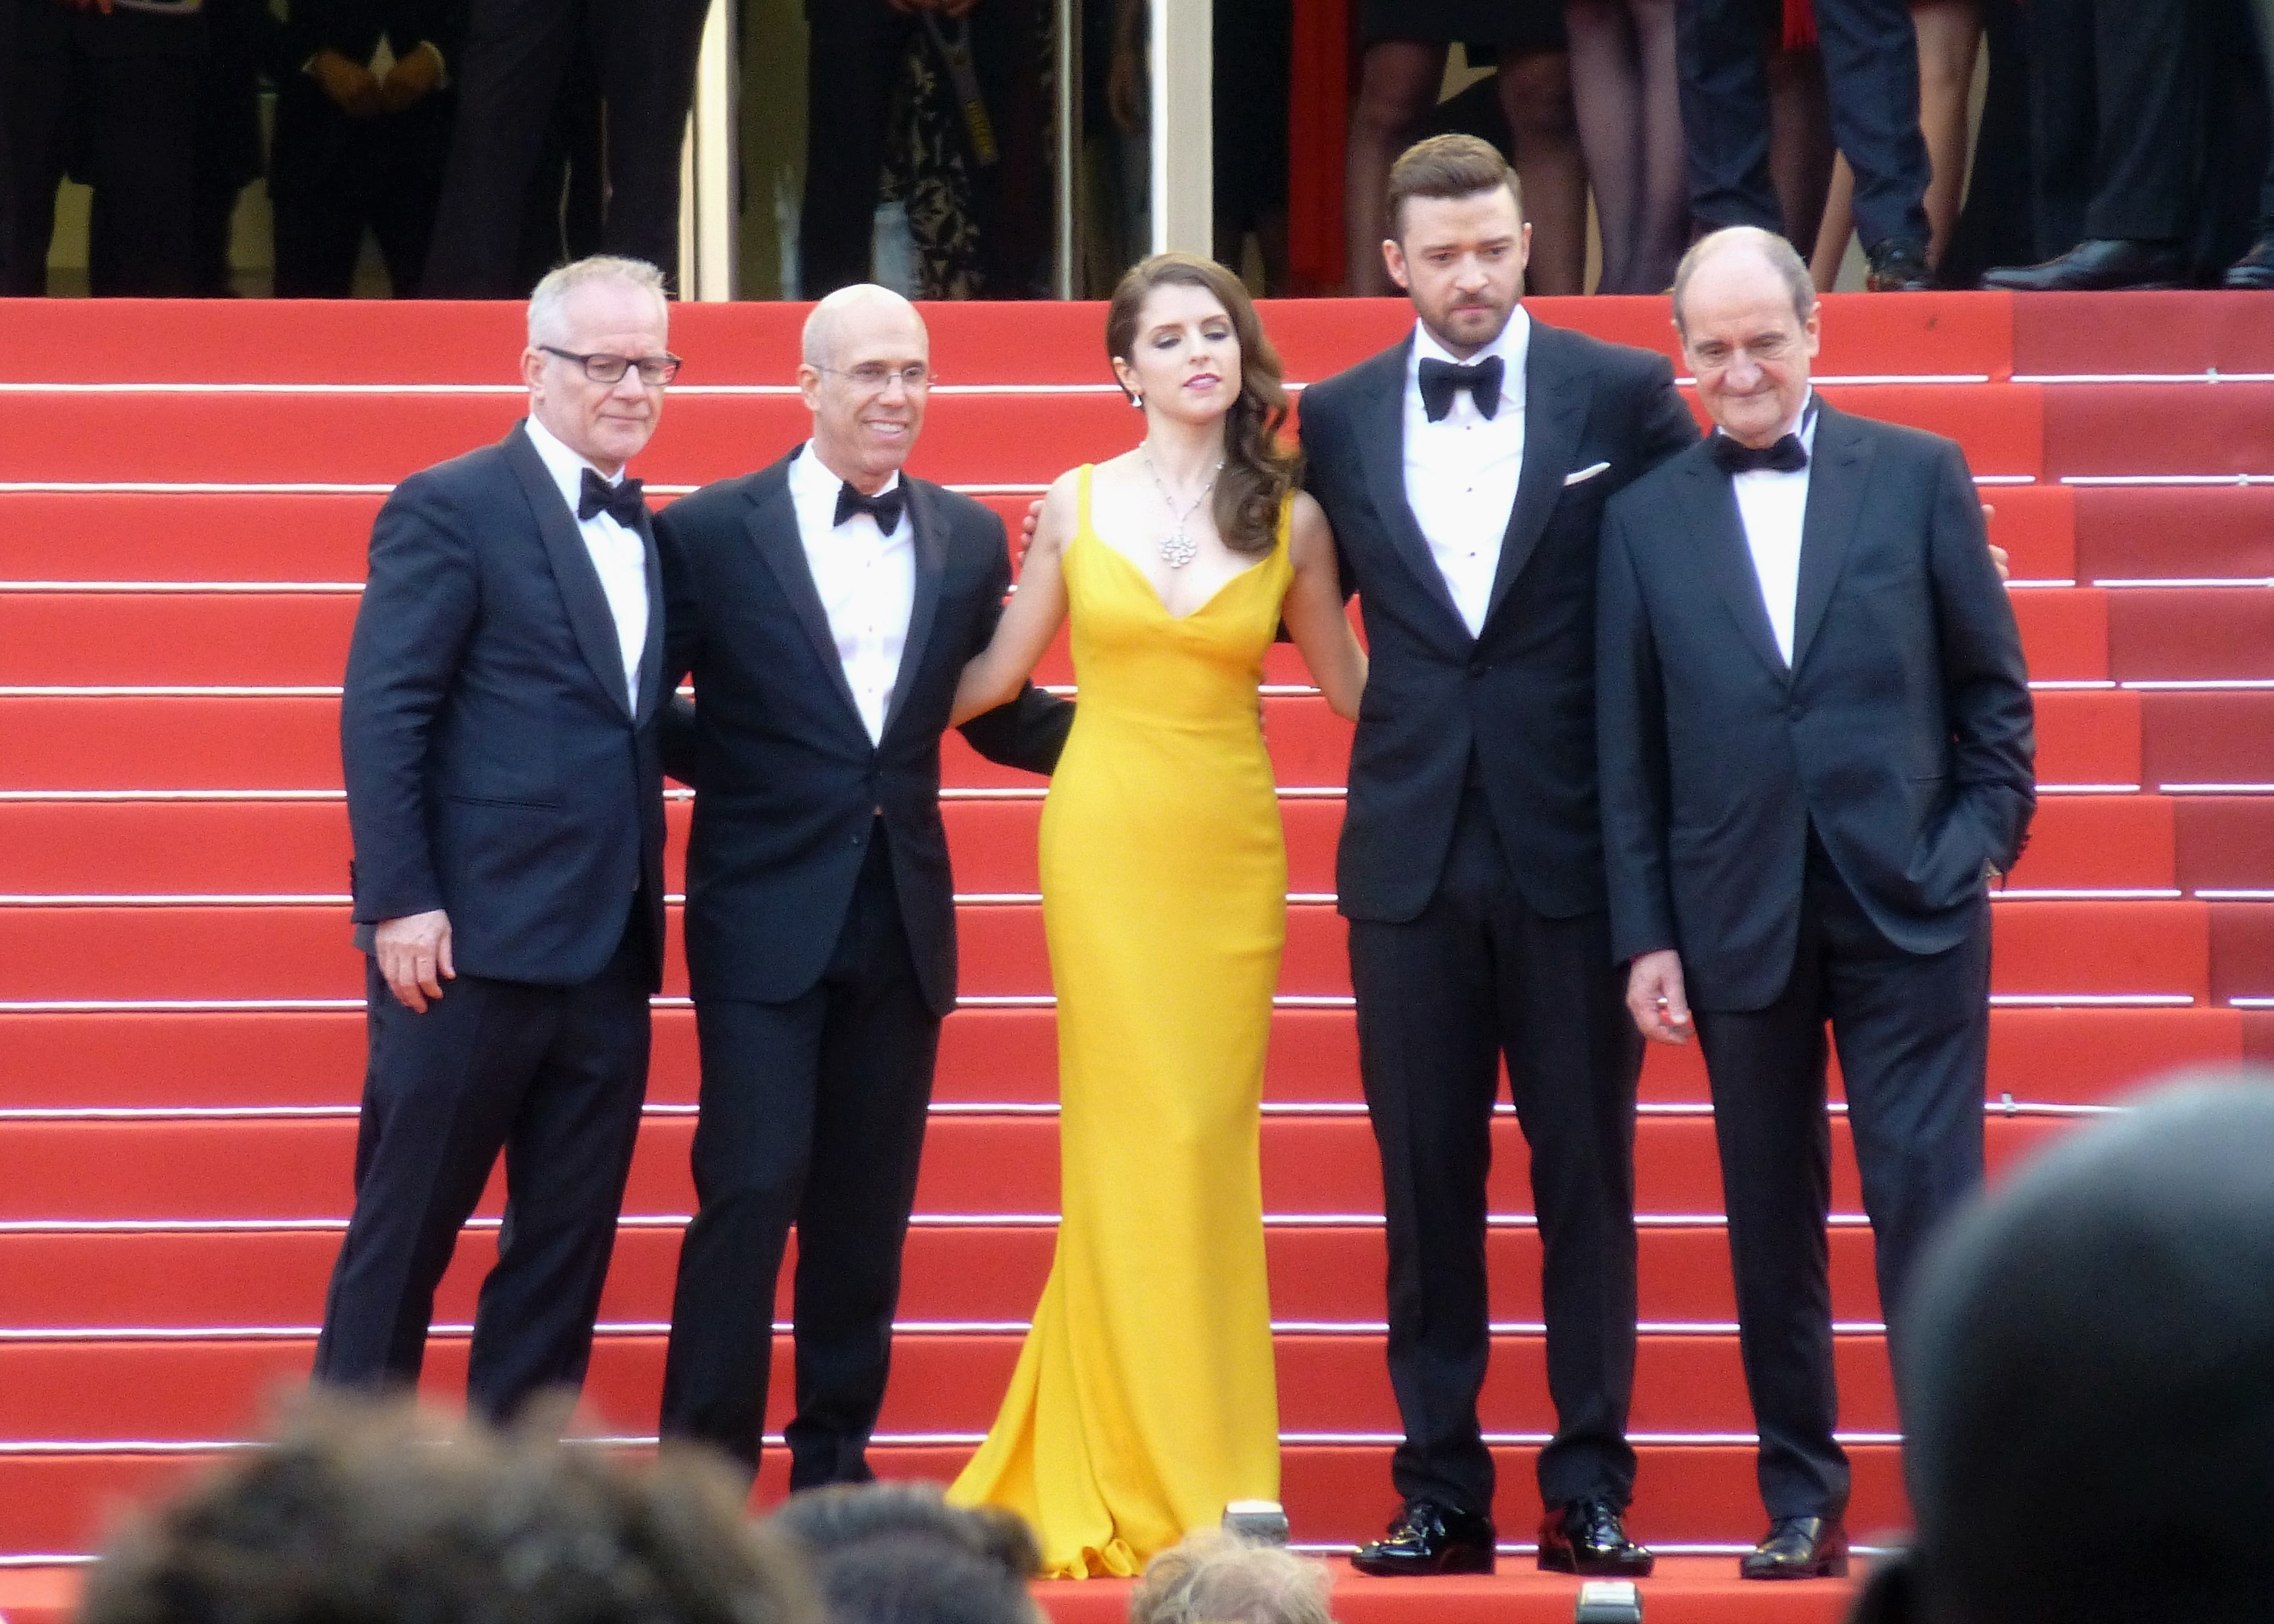 Anna_Kendrick_and_Justin_Timberlake_-_Cannes_2016